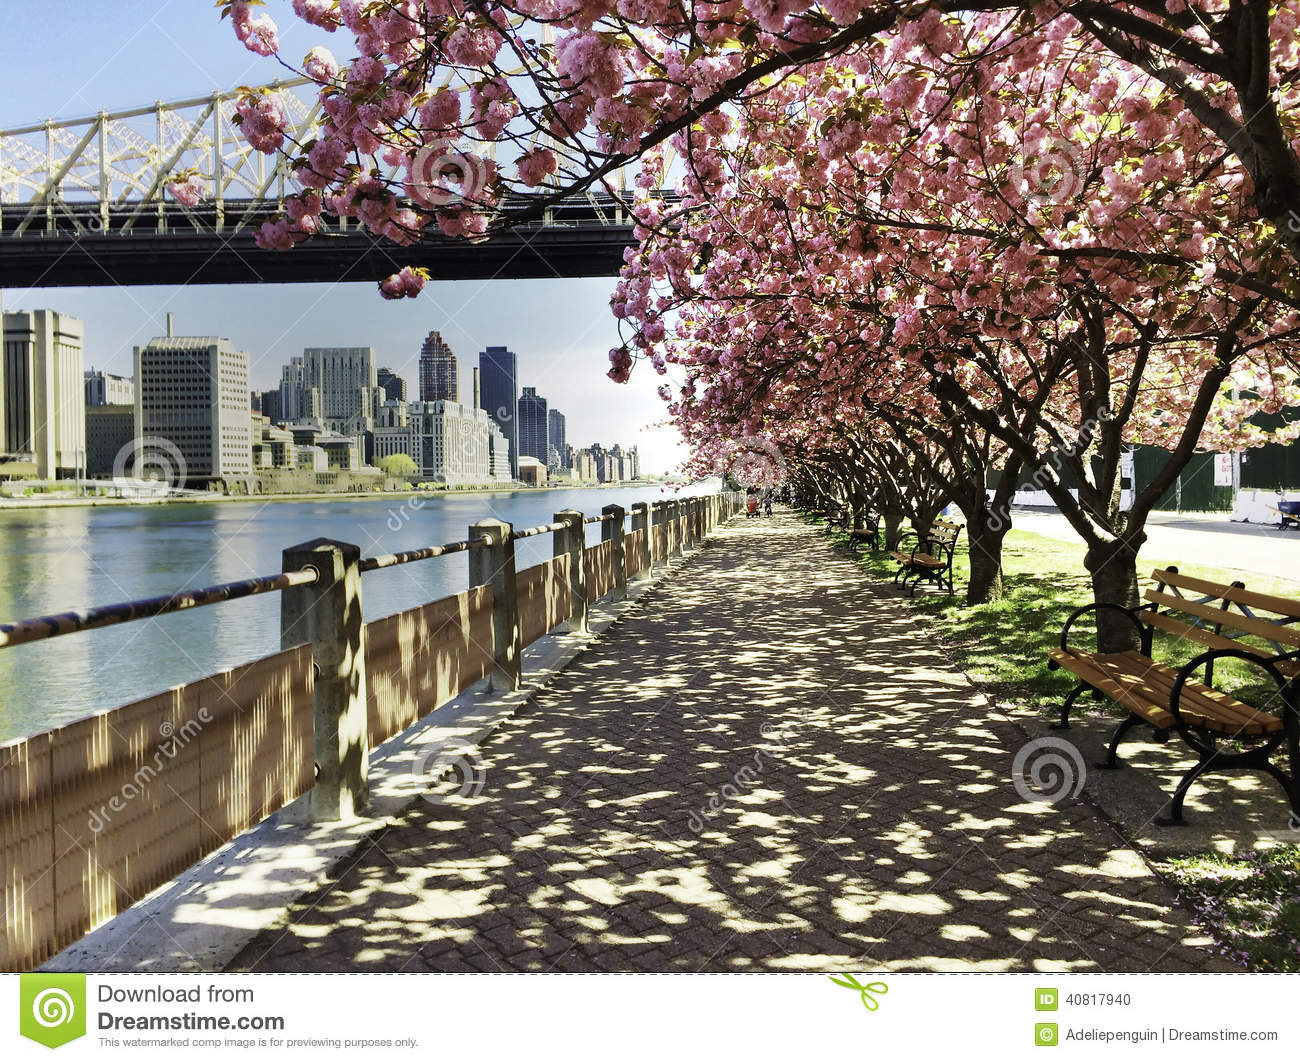 Stadsmening met Cherry Blossoms, New York